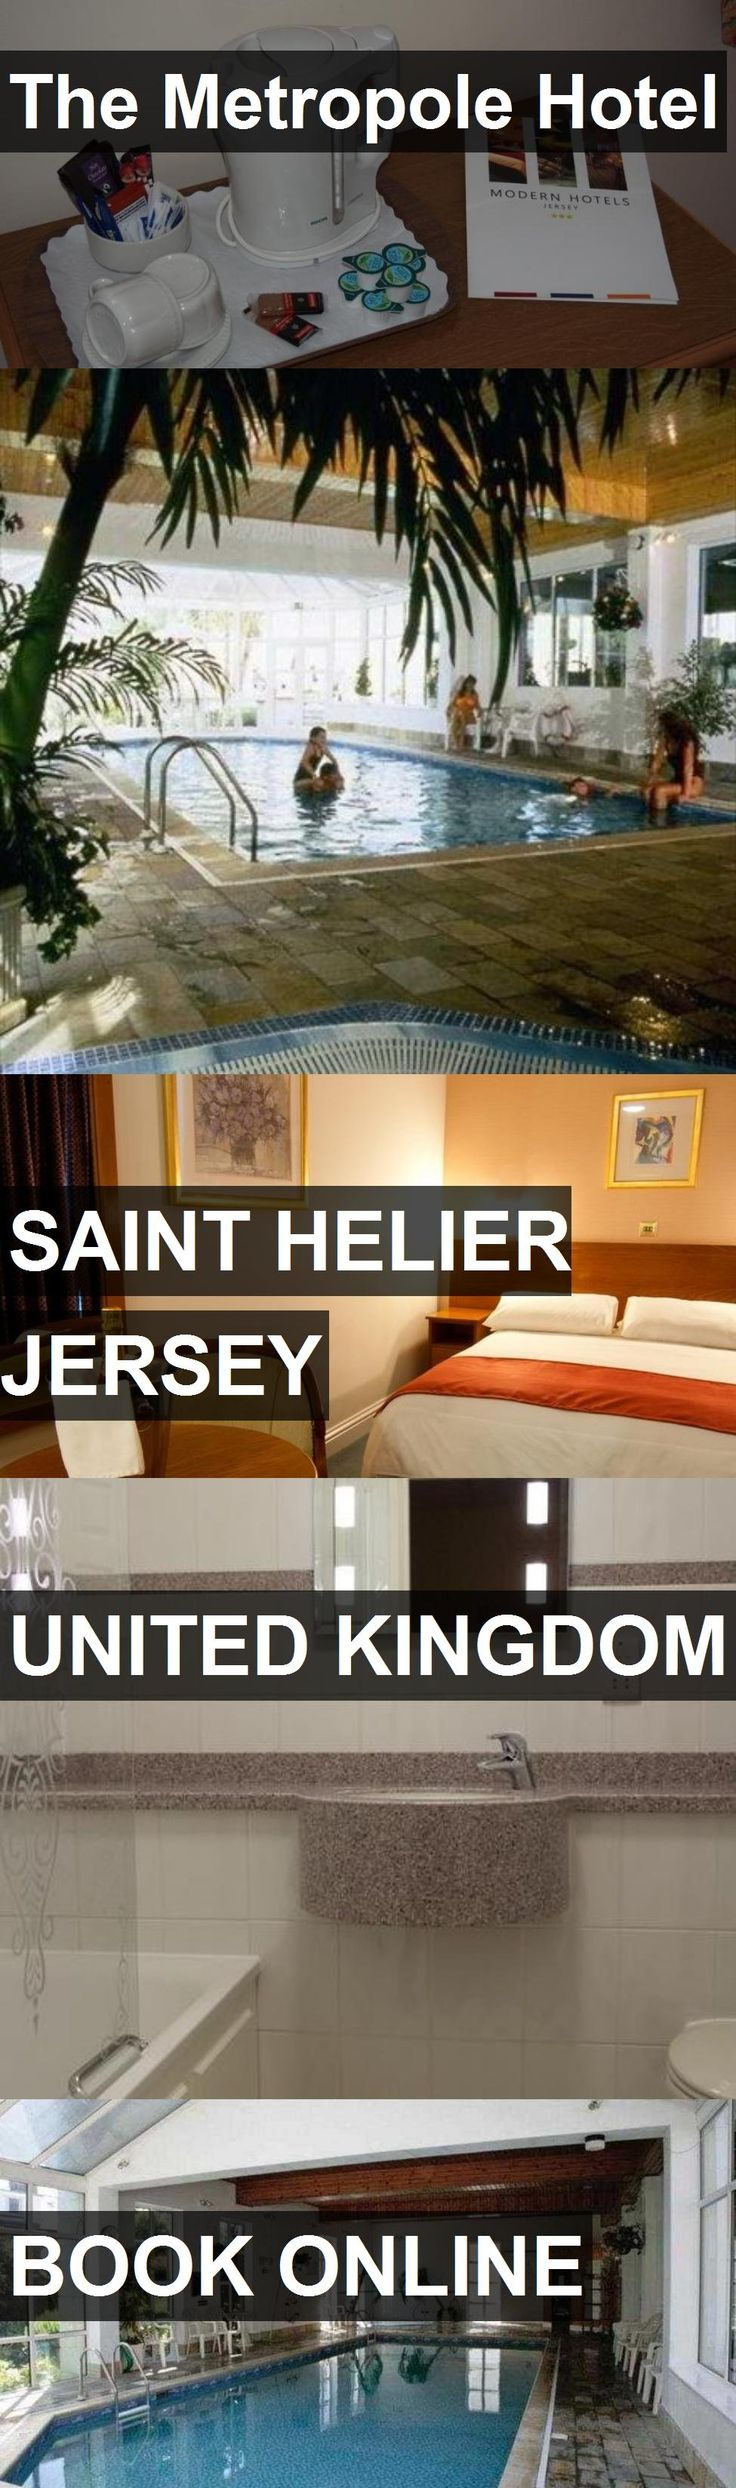 The Metropole Hotel in Saint Helier Jersey, United Kingdom. For more information, photos, reviews and best prices please follow the link. #UnitedKingdom #SaintHelierJersey #travel #vacation #hotel